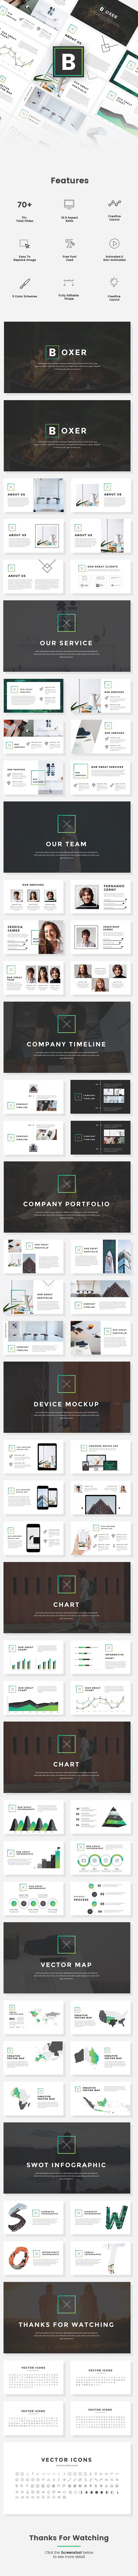 Boxer - Creative PowerPoint Template